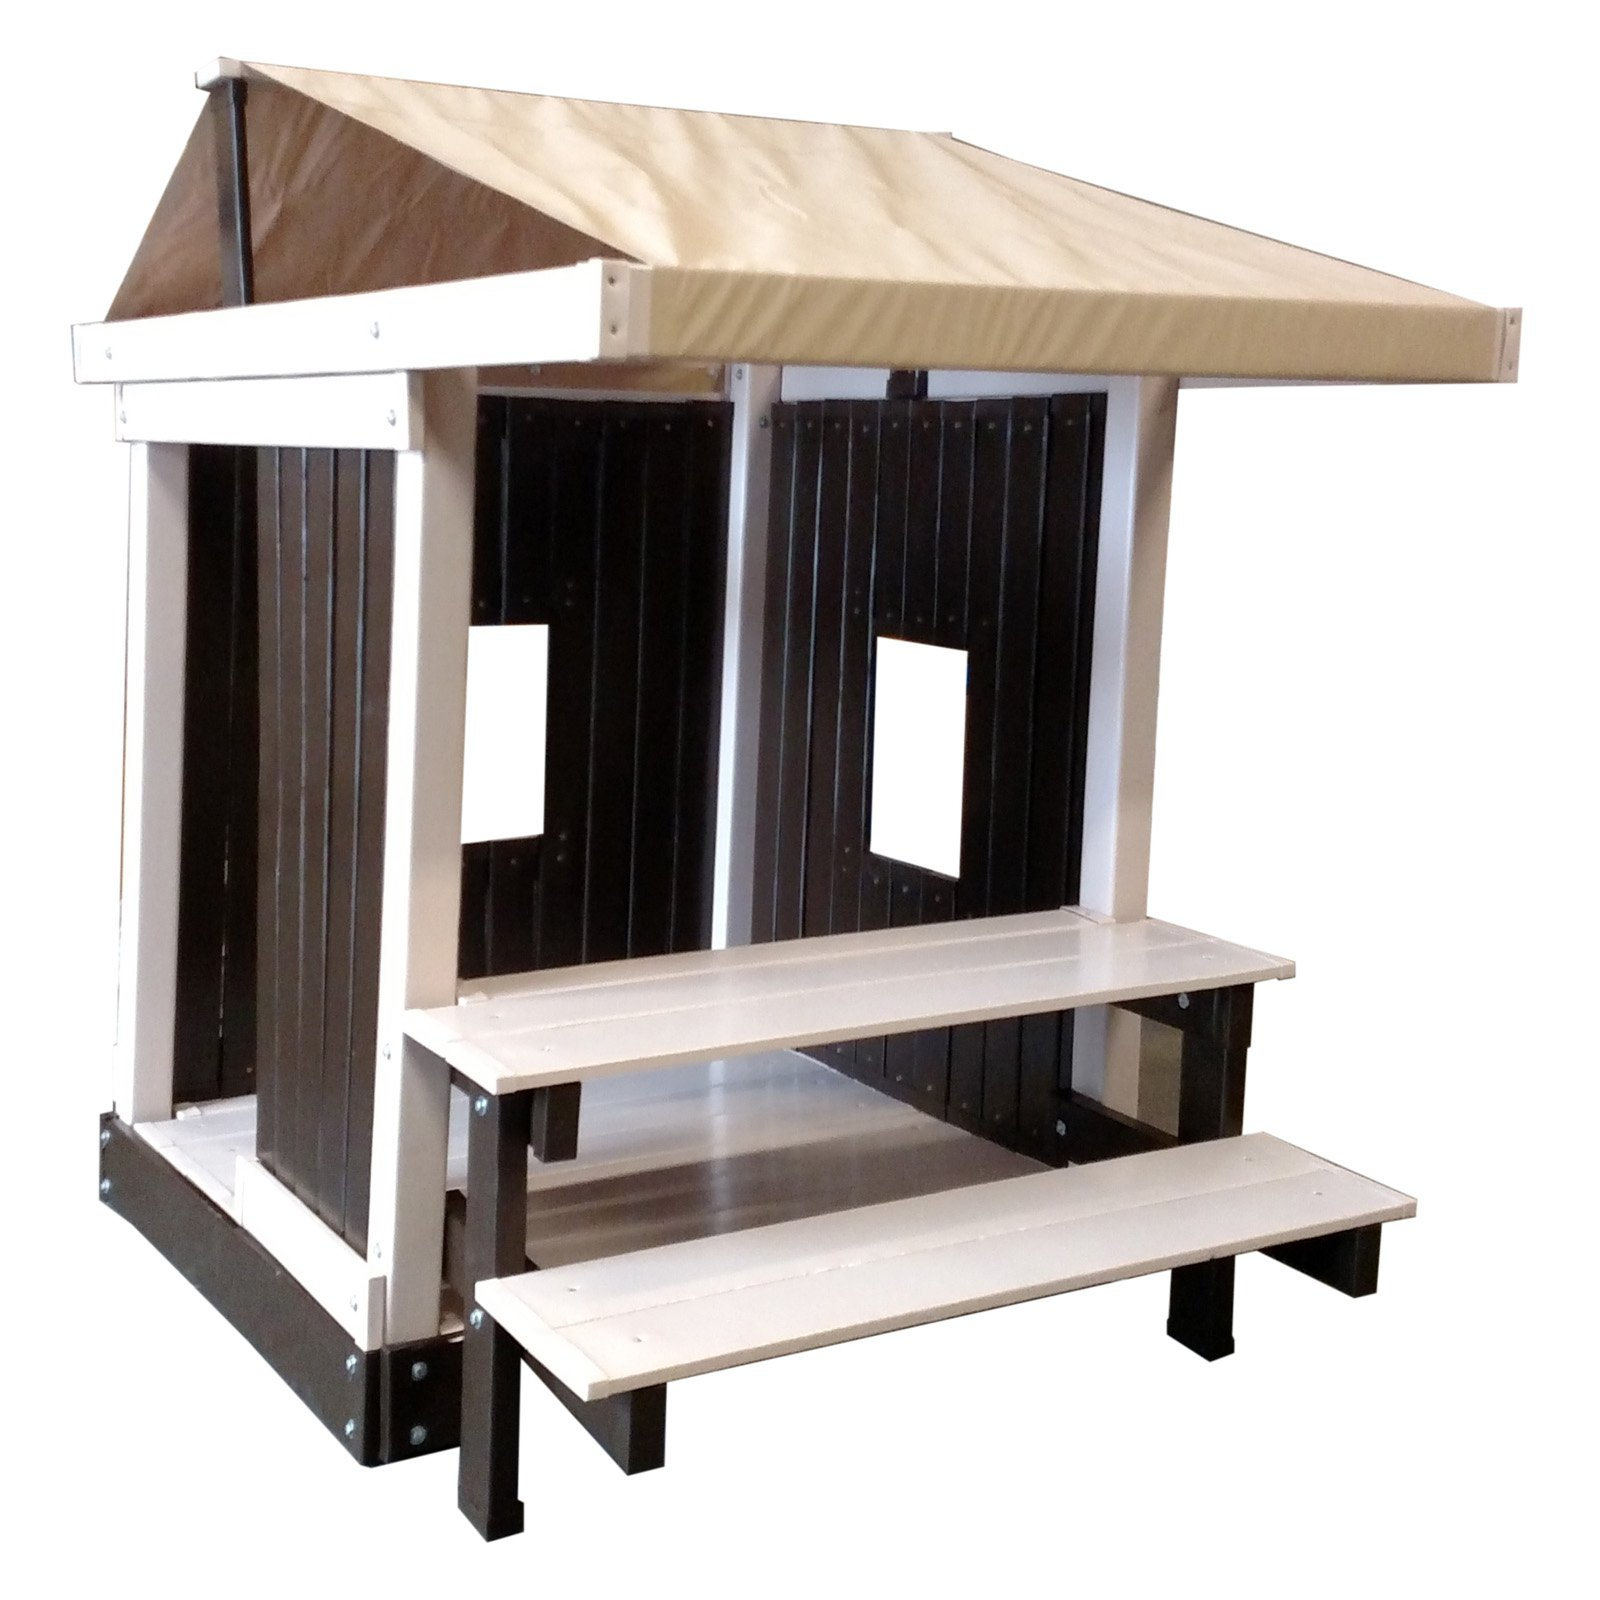 Kidwise Congo Clubhouse with Picnic Table - Brown